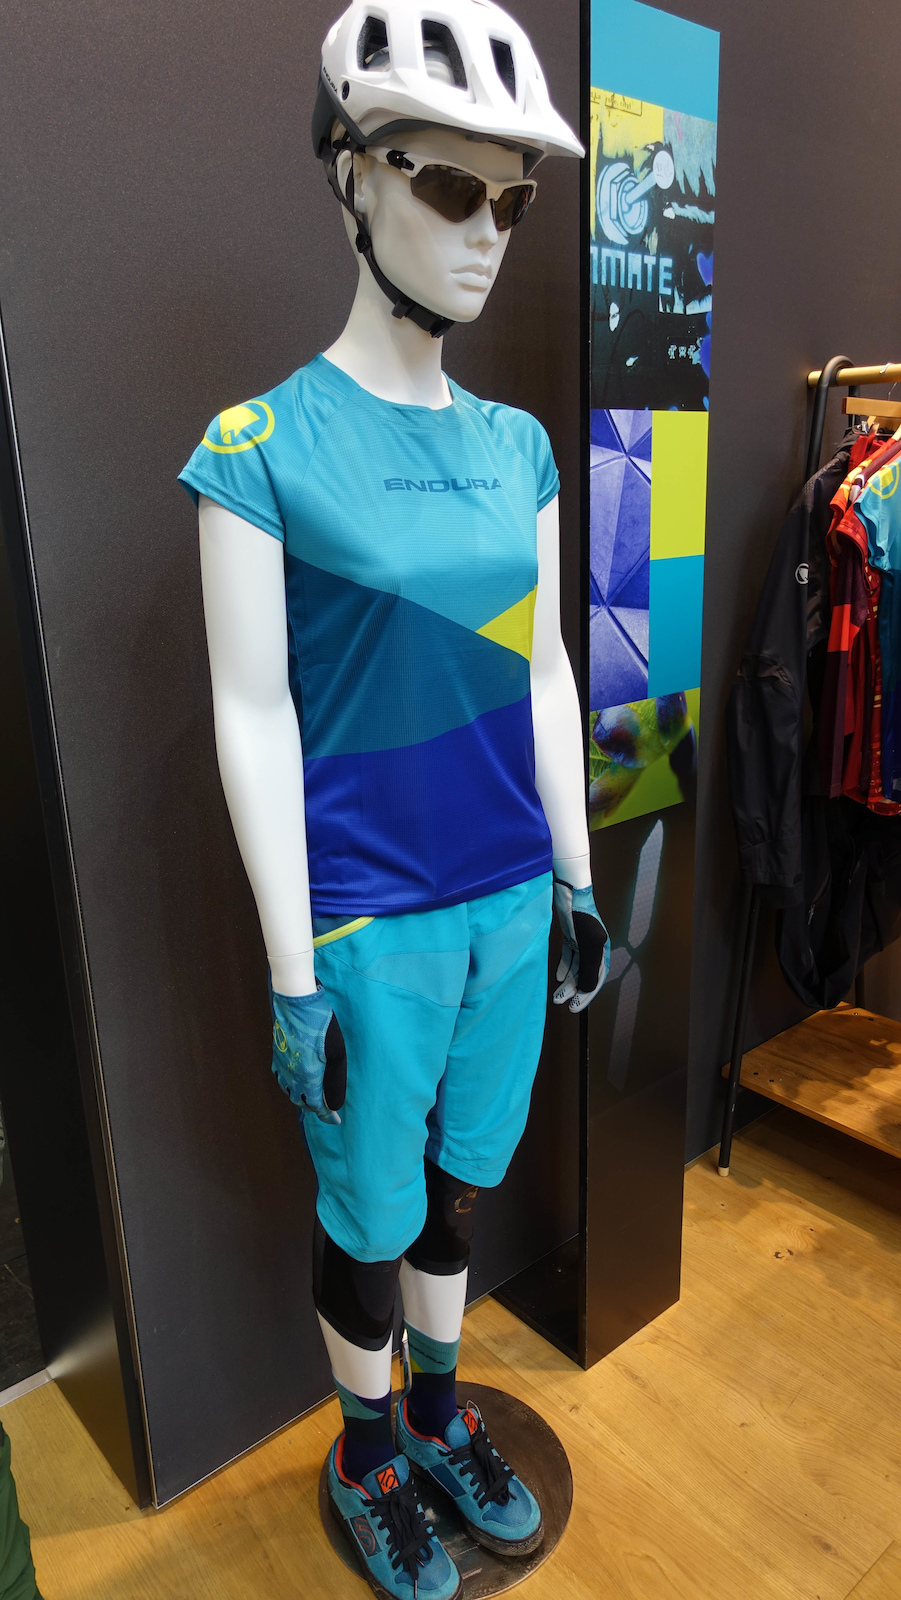 Endura s women s limited Singletrack short and Singletrack jersey. Endura have done a U-turn and are now making bright and colourful kit that looks great. The shorts are 59.99 the jersey is 37.99.